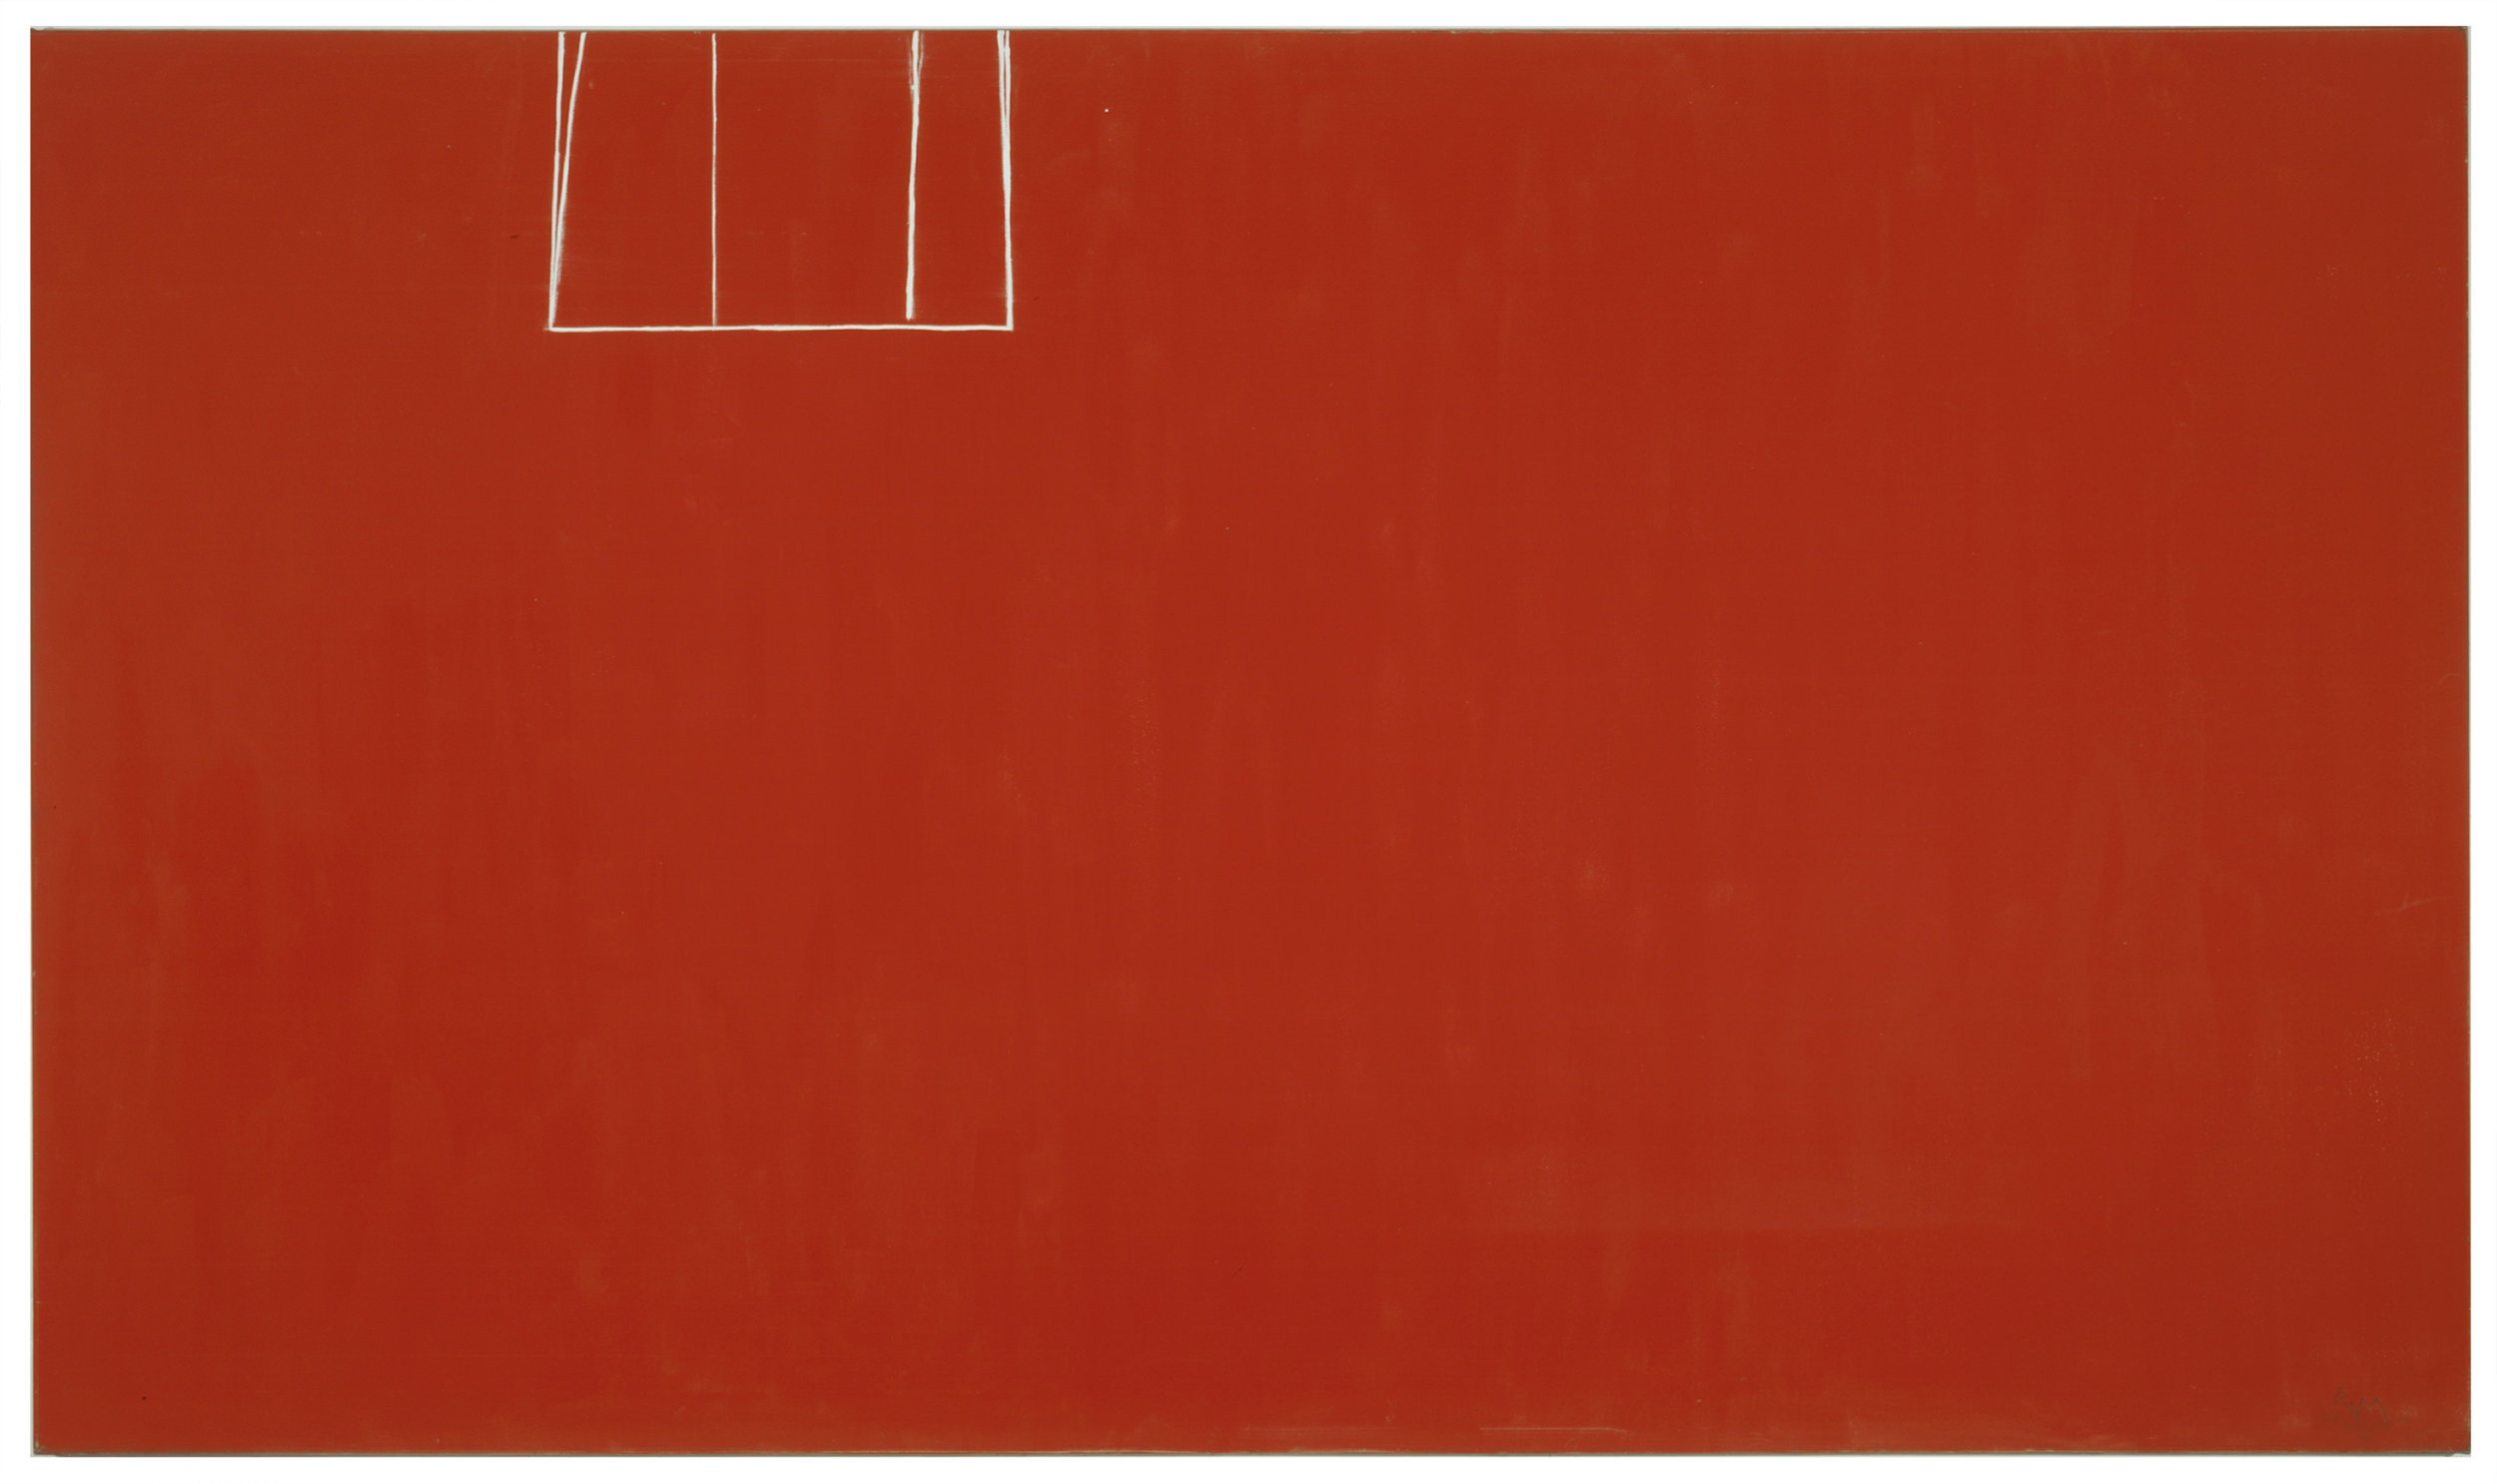 Open No. 153 (In Scarlet with White Line), 1970, Acrylic on canvas, 219.7 x 378.5 cms (86 1/2 x 149 ins)